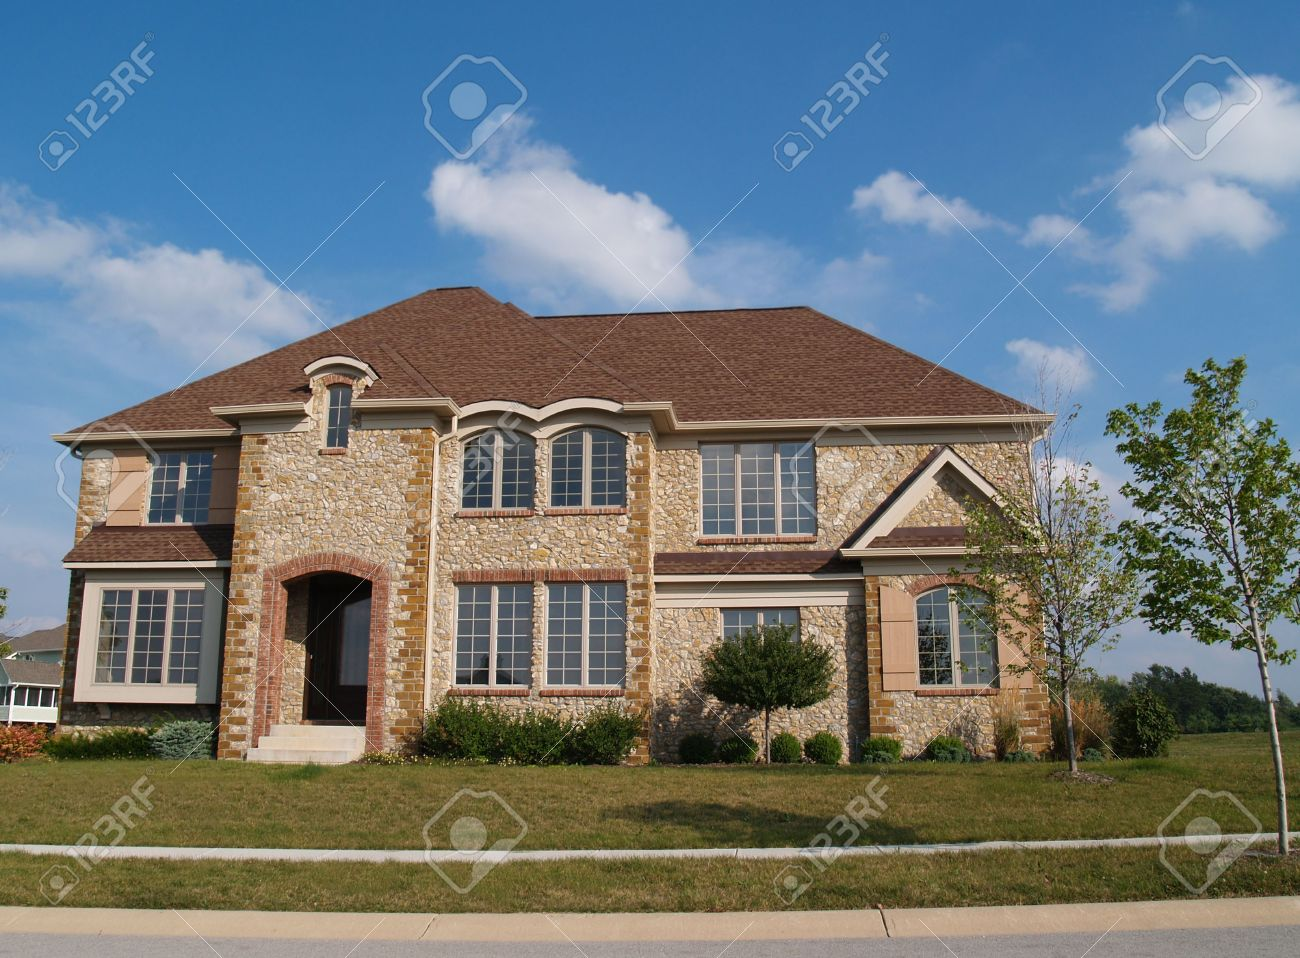 Two story contemporary stone residential home with arched windows. Stock Photo - 5862576